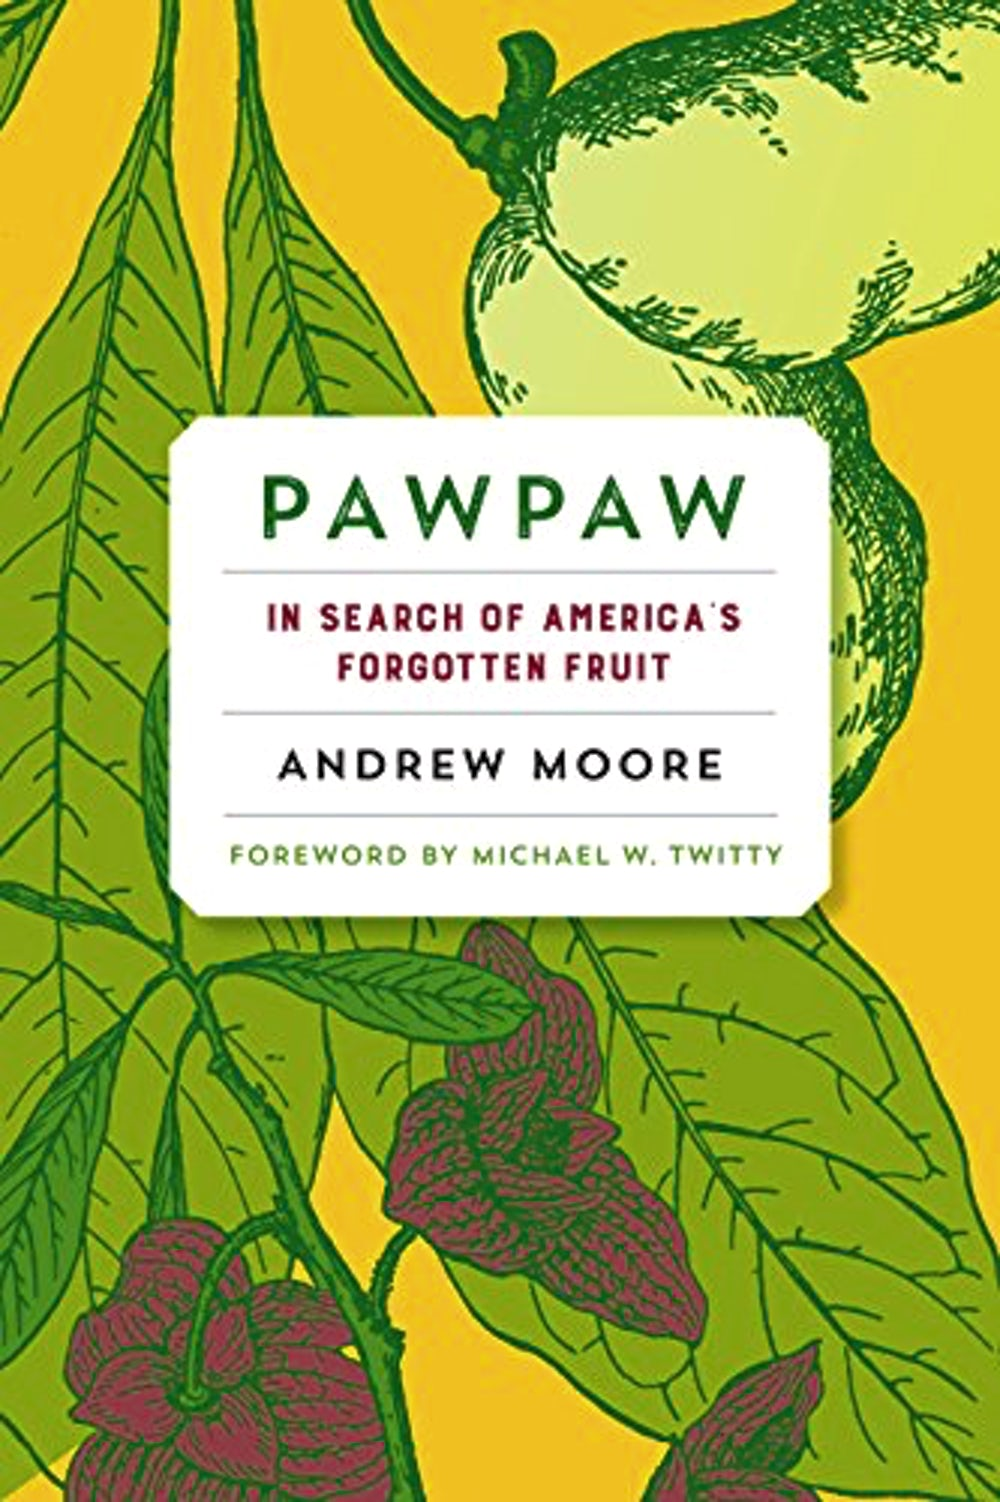 The cover of Pawpaw: In Search of America's Forgotten Fruit, with illustrated pawpaws on a yellow background.